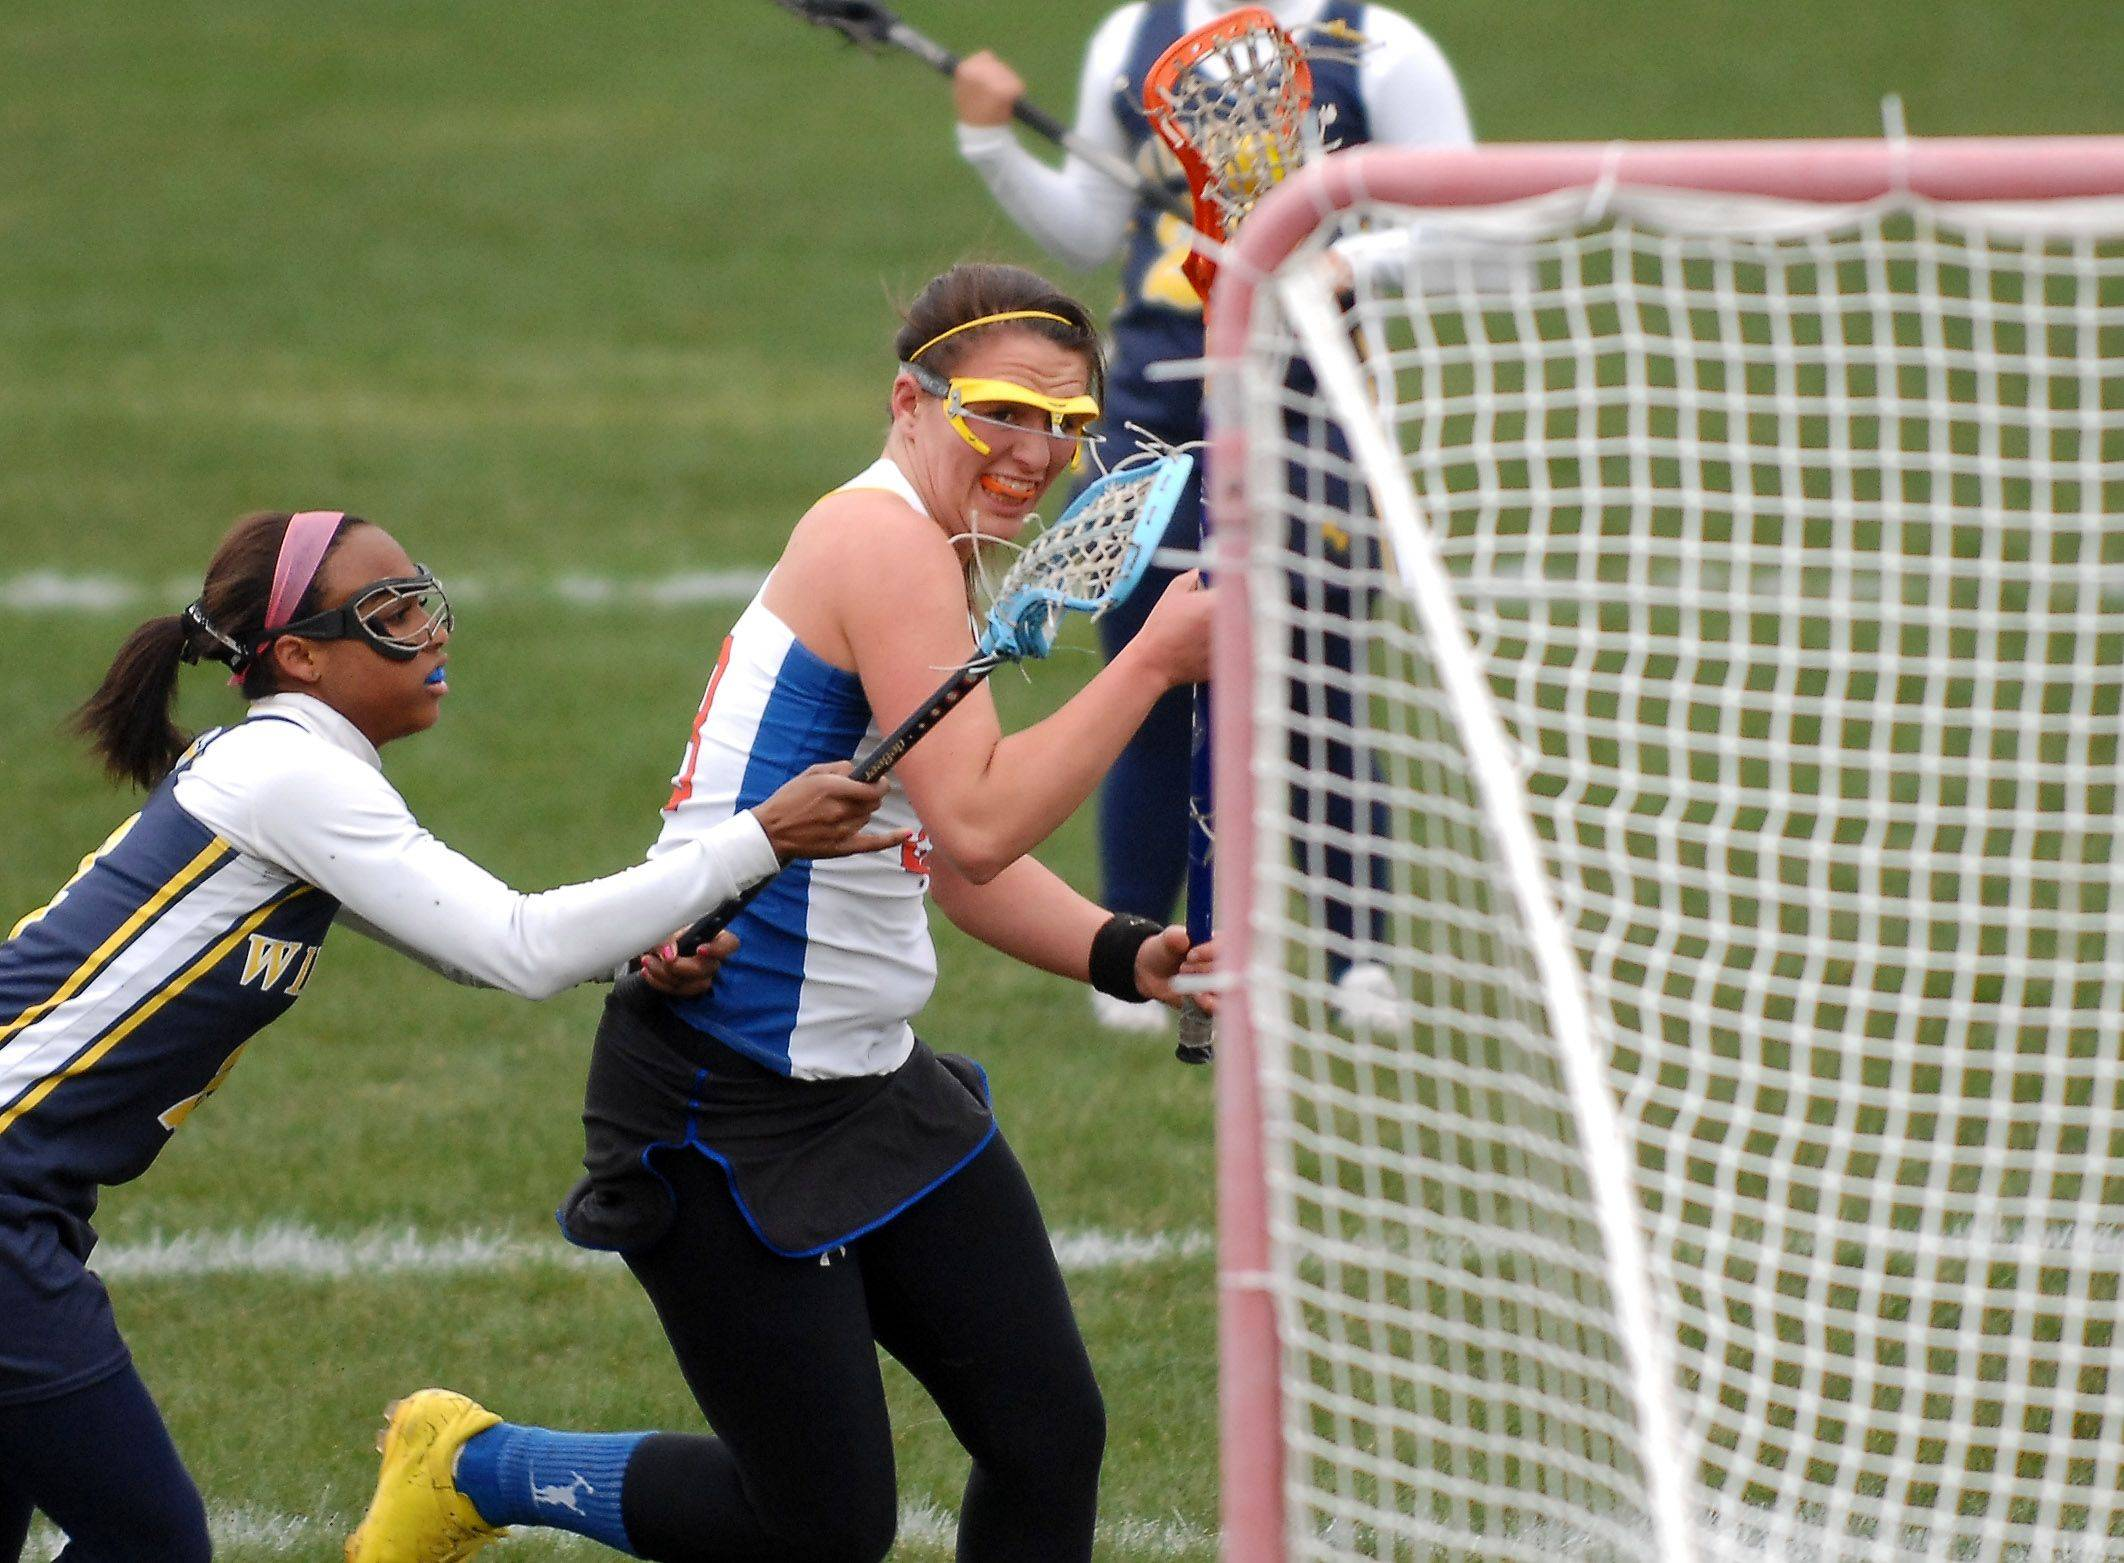 Katie Bogle of the St. Charles Co-op battles past Neuqua Valley's Taylor Maduro before she shoots and scores during girls lacrosse action in St. Charles Thursday, April 21, 2011.